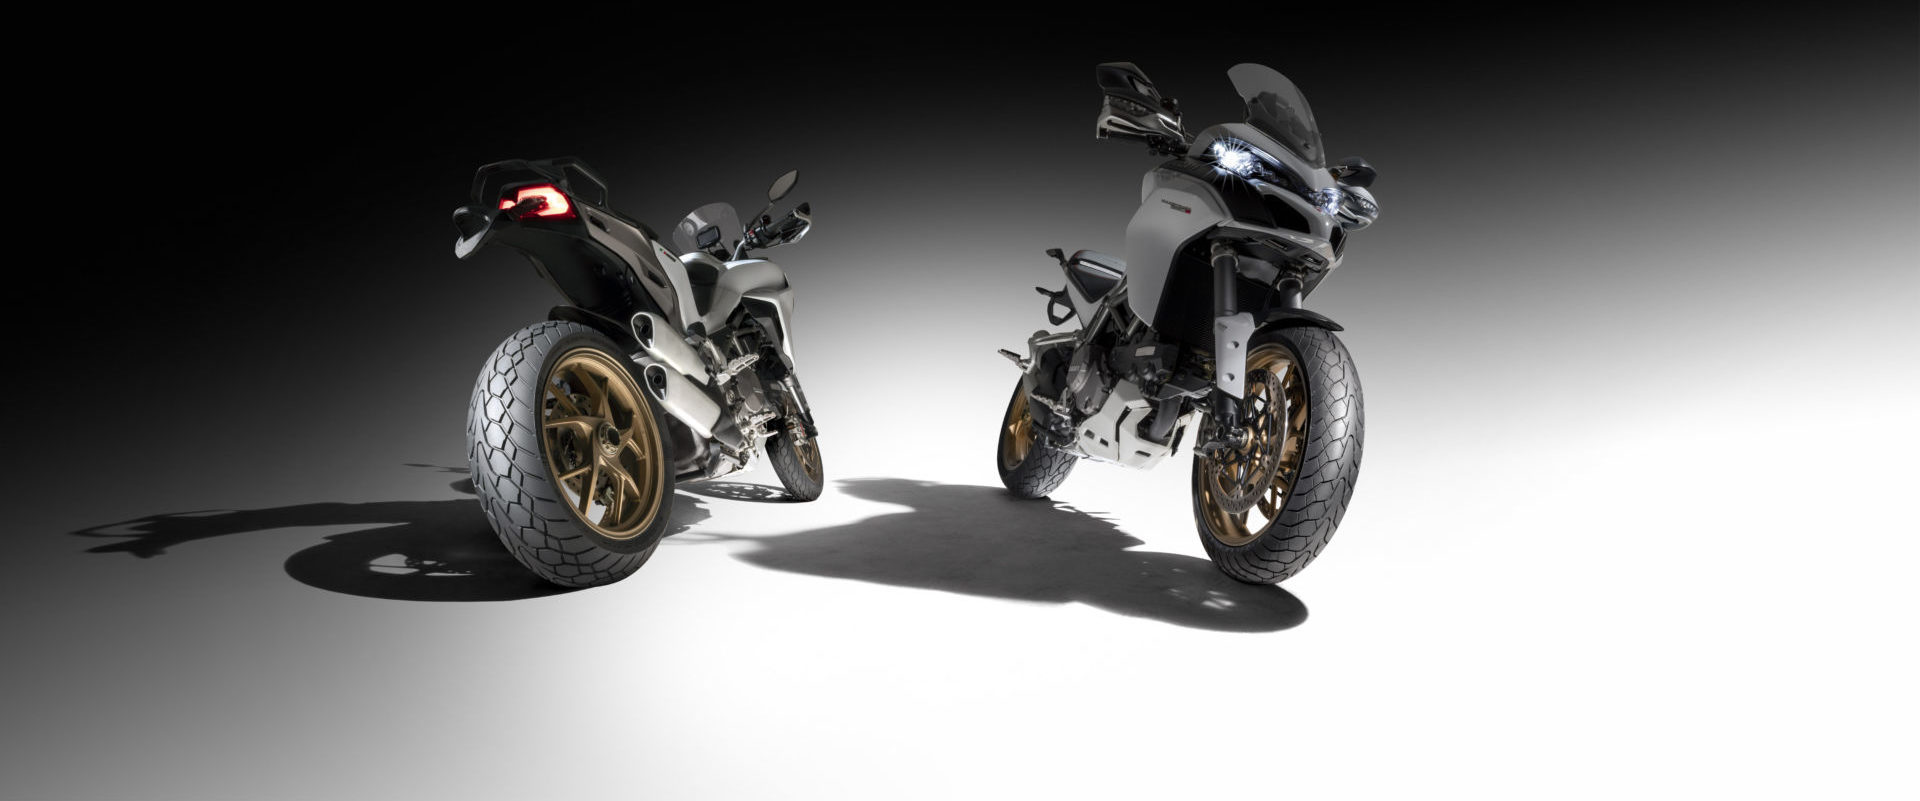 Dunlop's new Mutant tires mounted on Ducati Multistrada streetbikes. Photo courtesy Dunlop.